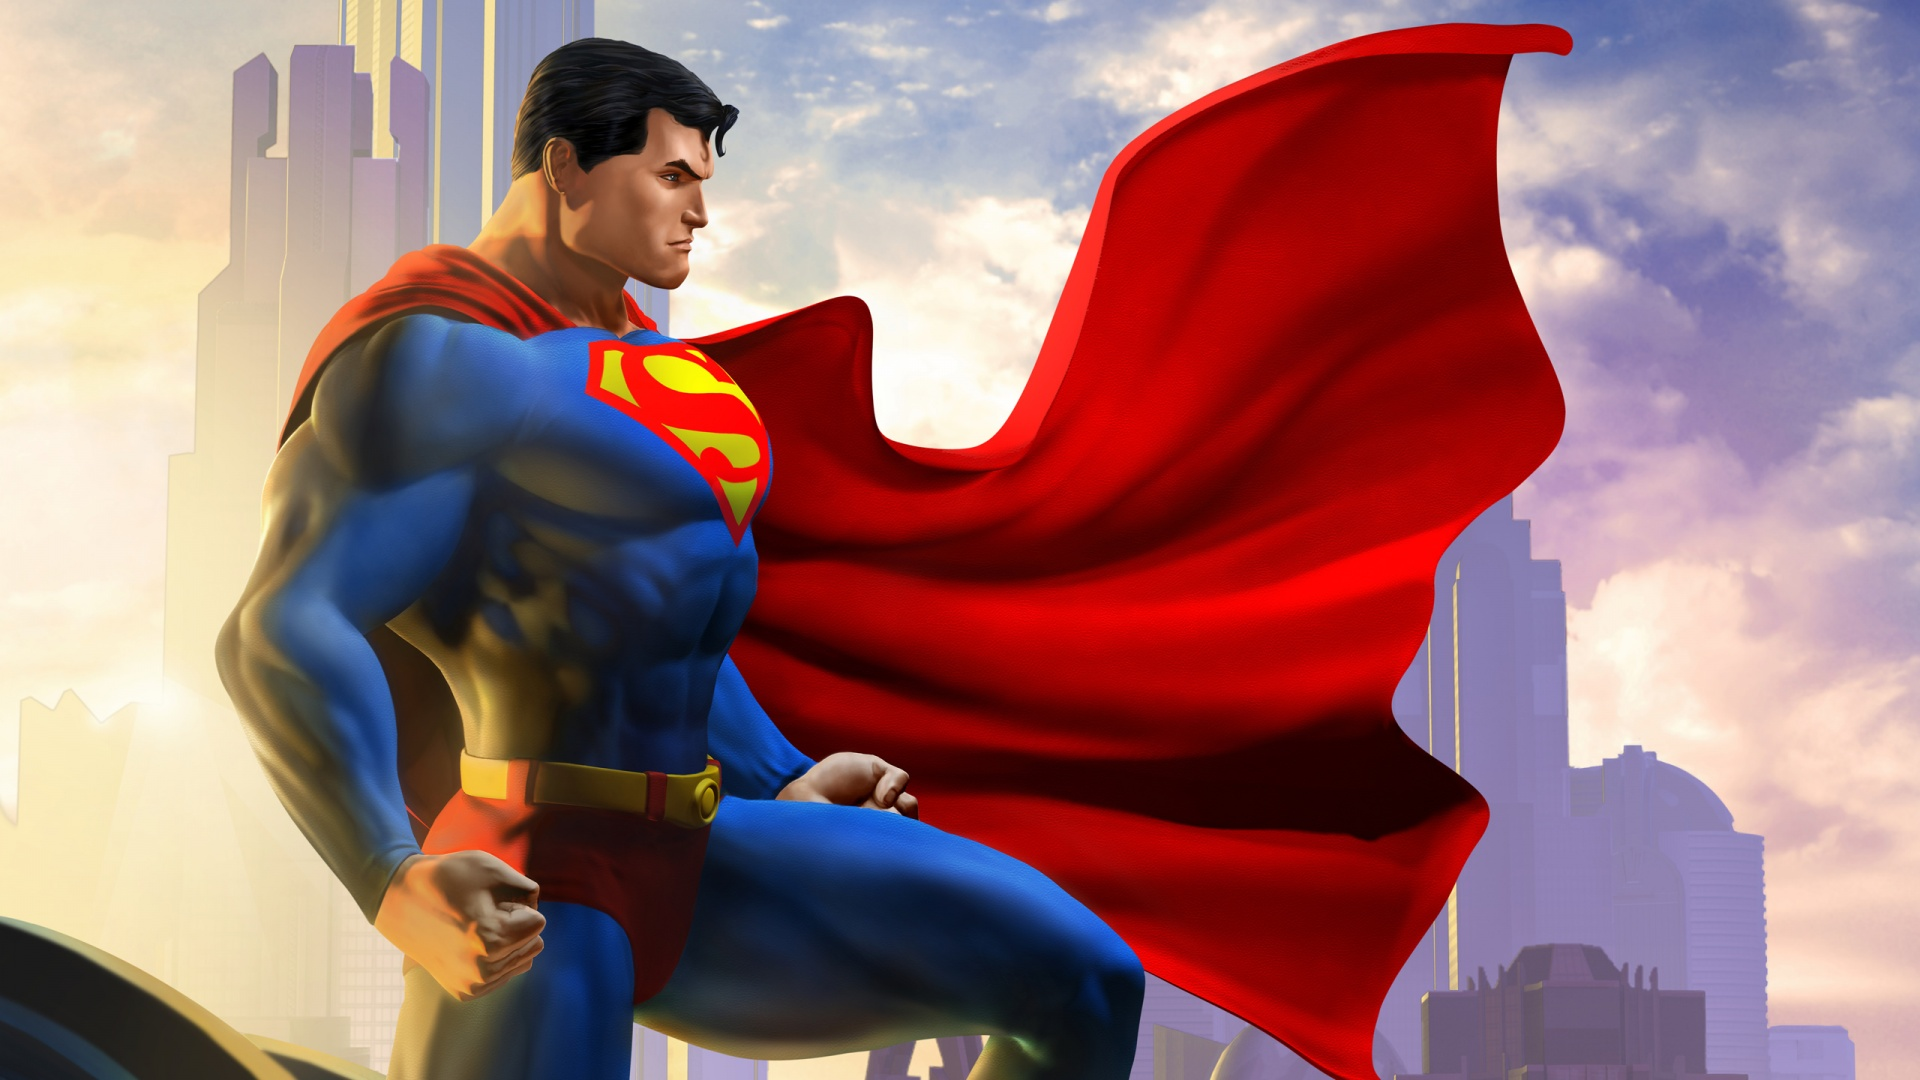 Superman Animated Wallpaper Superman Dc Universe Online Wallpapers In Jpg Format For